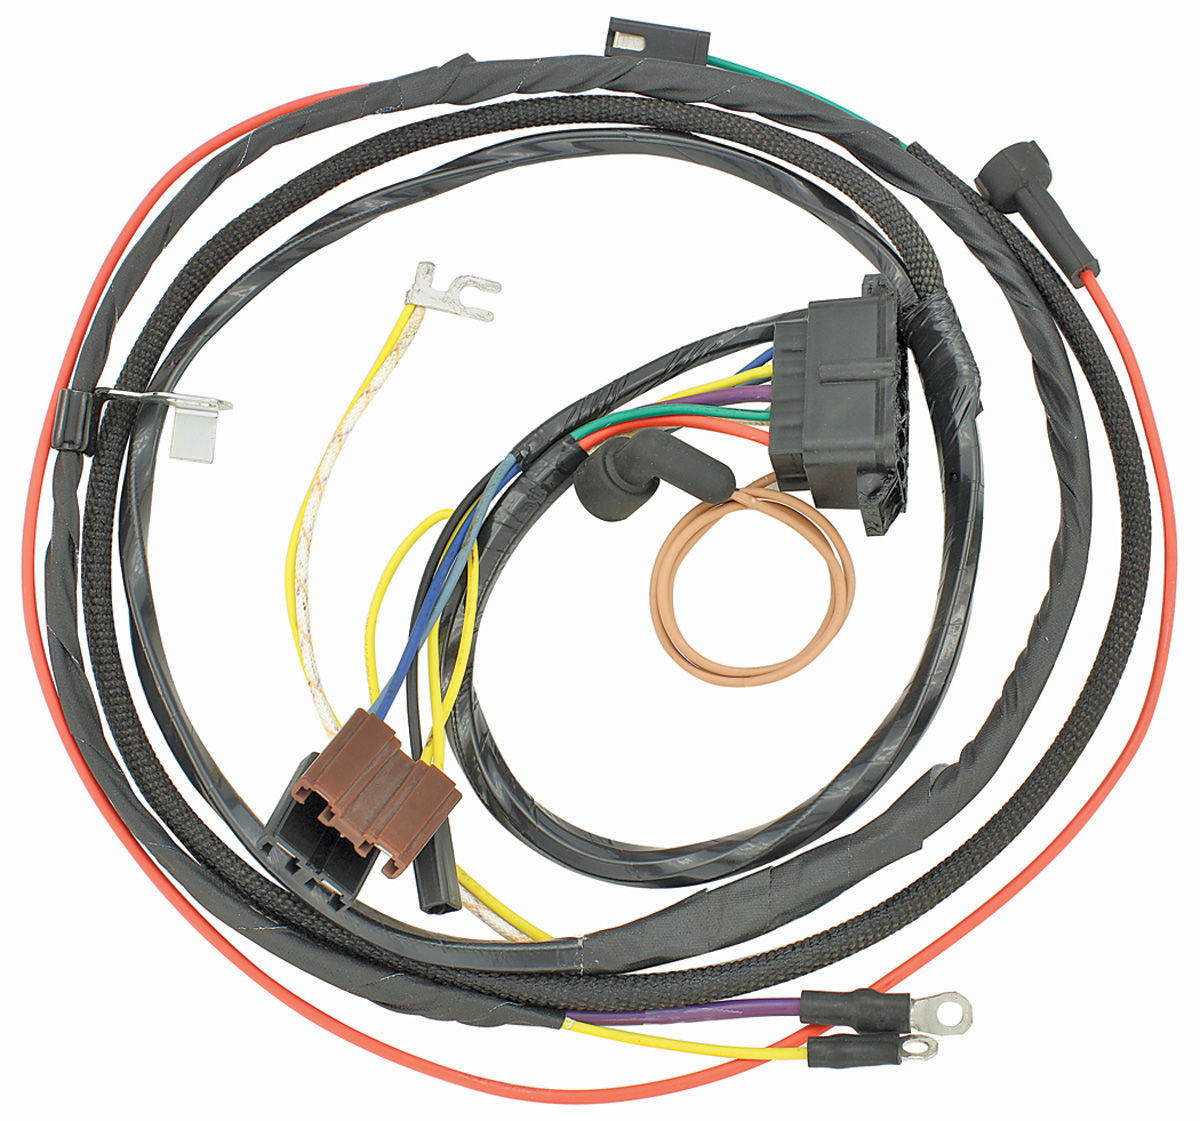 1972 chevelle engine wiring harness trusted wiring diagram 1966 chevelle distributor wiring 1966 chevelle ss wiring diagram [ 1200 x 1121 Pixel ]